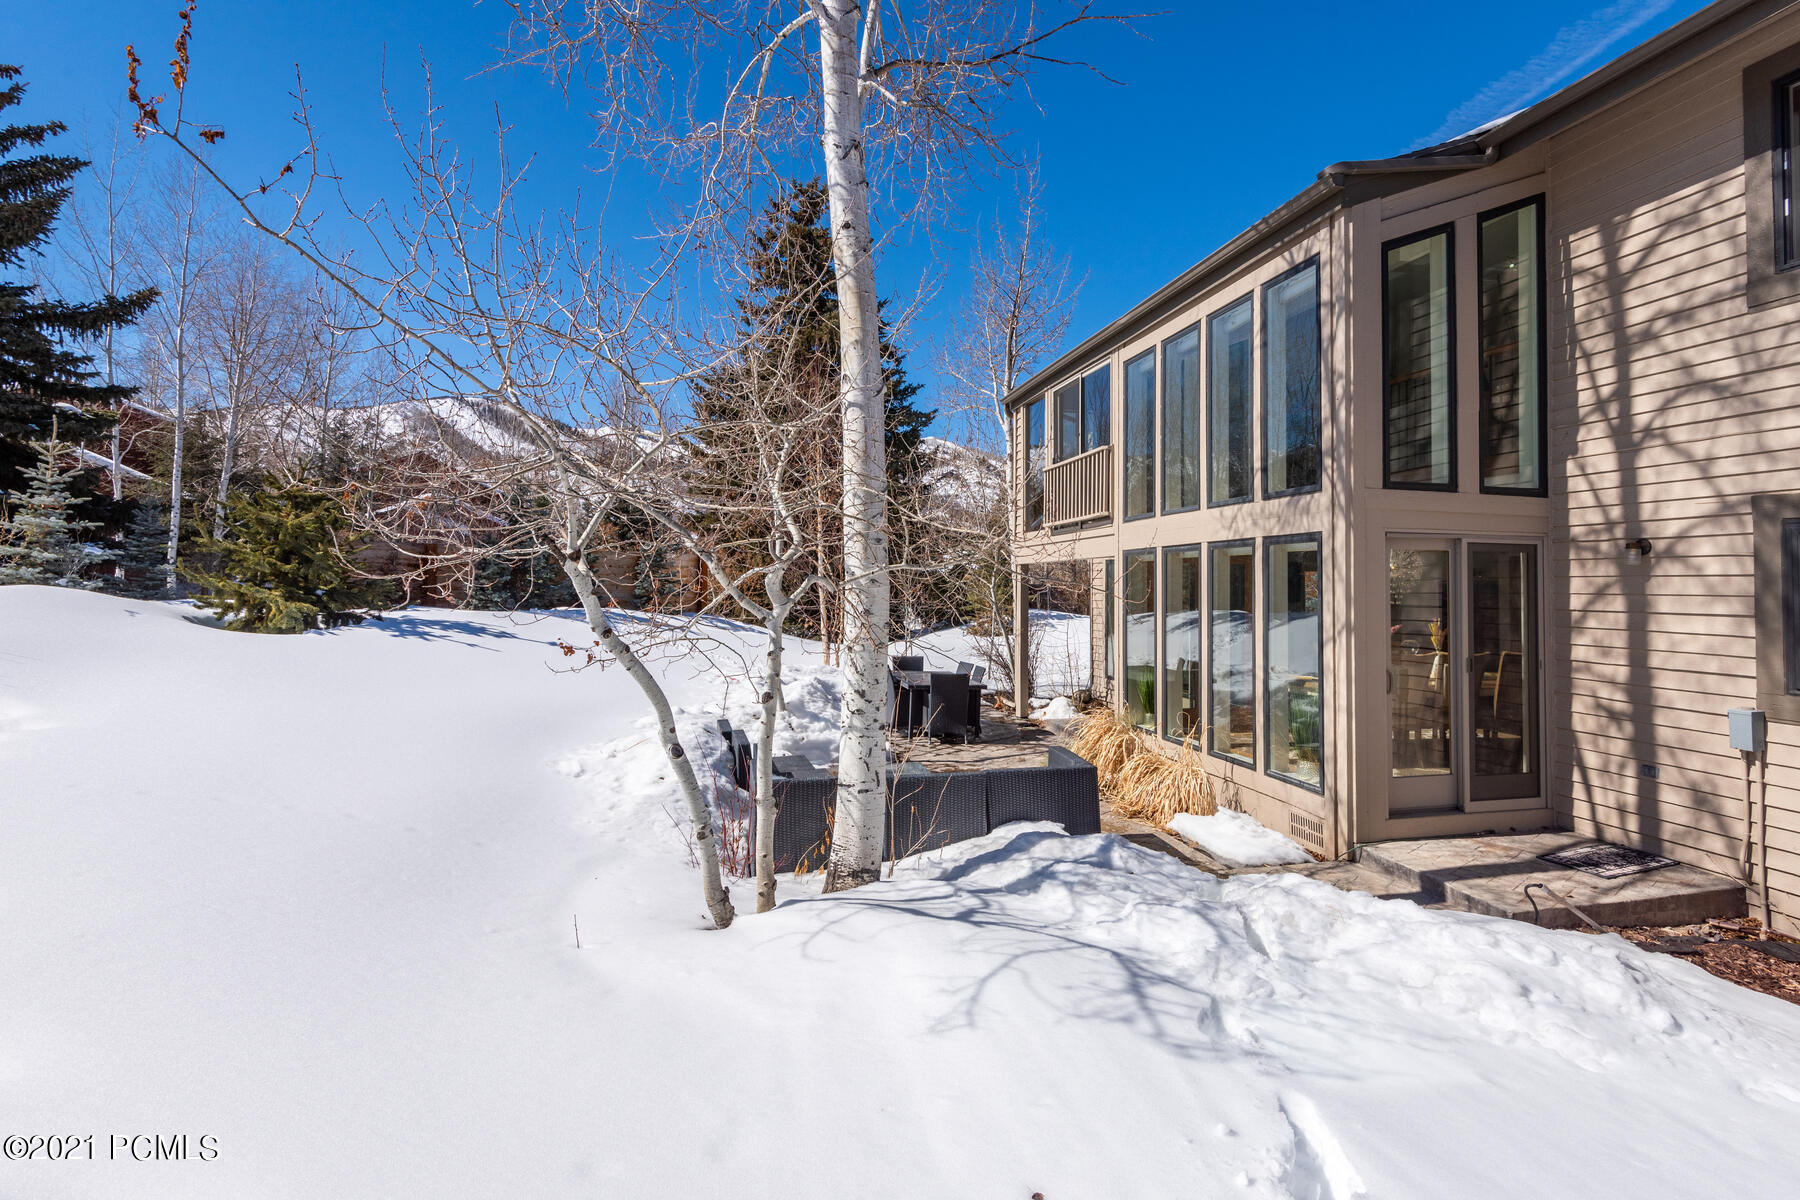 1539 Meadows Connection, Park City, Utah 84098, 4 Bedrooms Bedrooms, ,3 BathroomsBathrooms,Single Family,For Sale,Meadows Connection,12100696